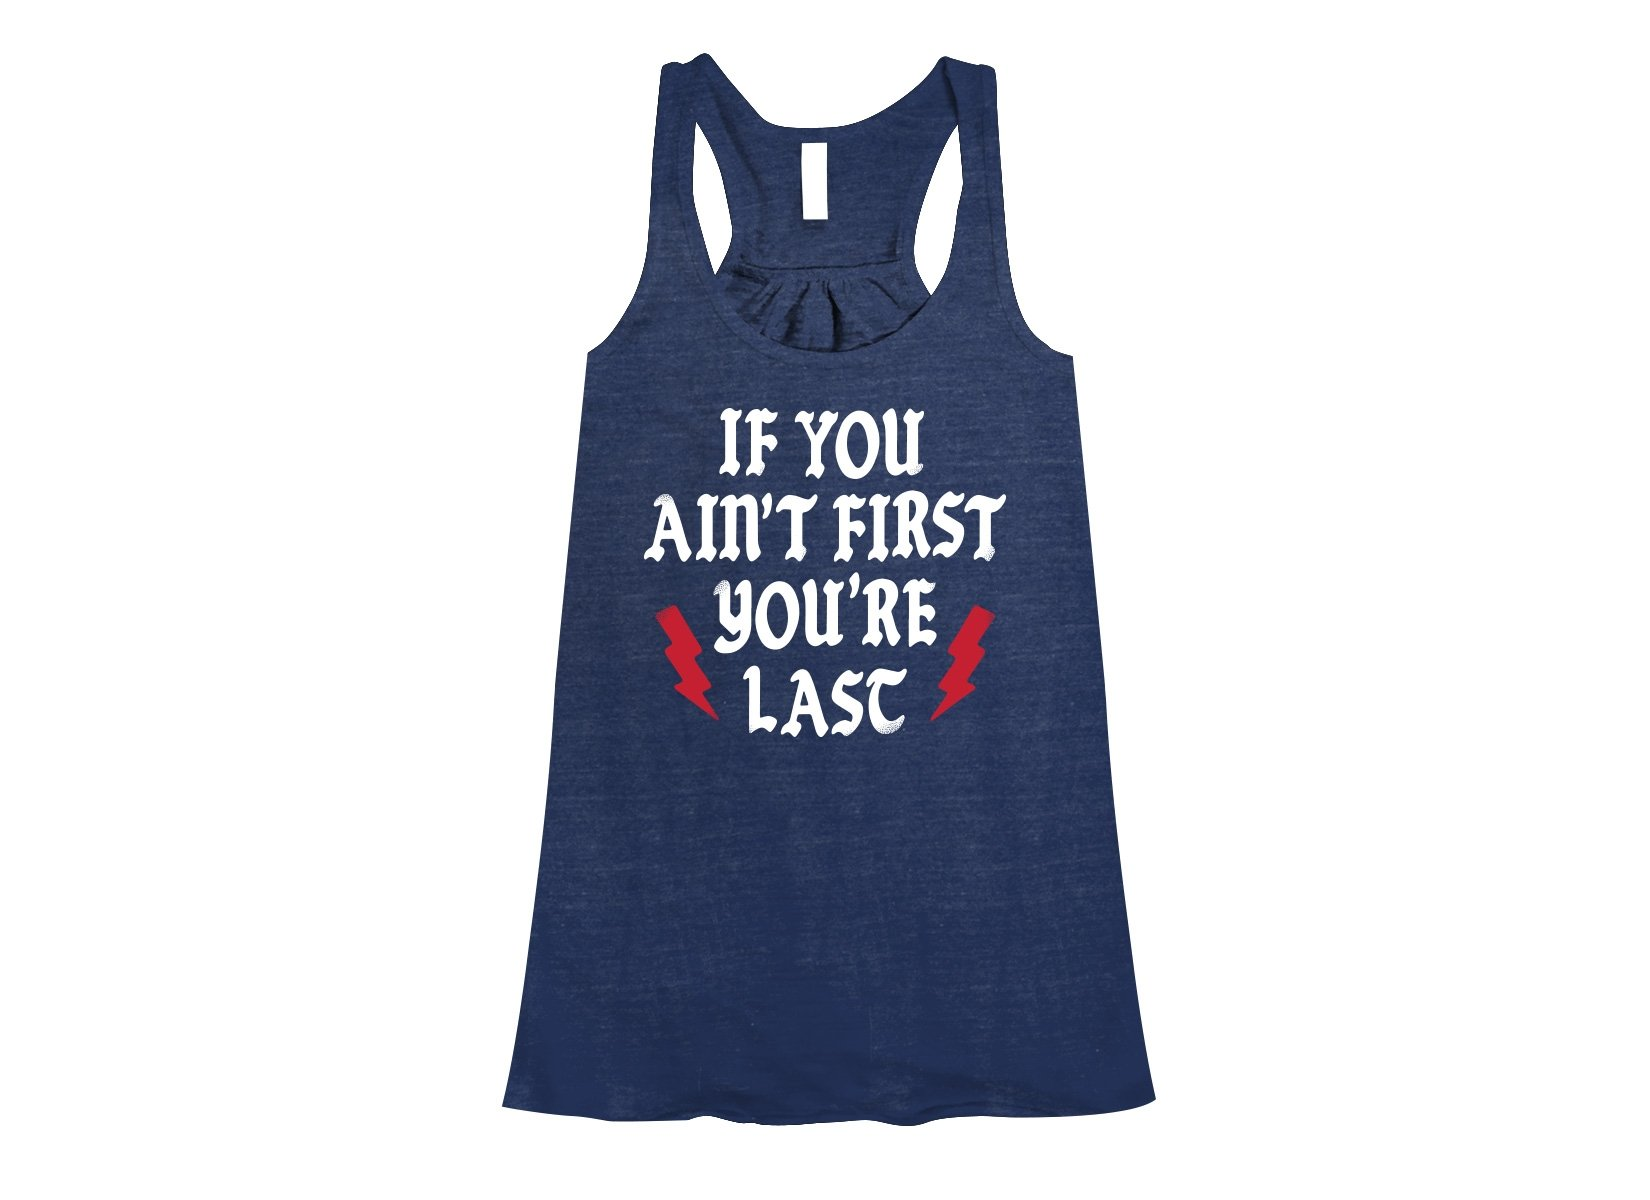 If You Ain't First You're Last on Womens Tanks T-Shirt